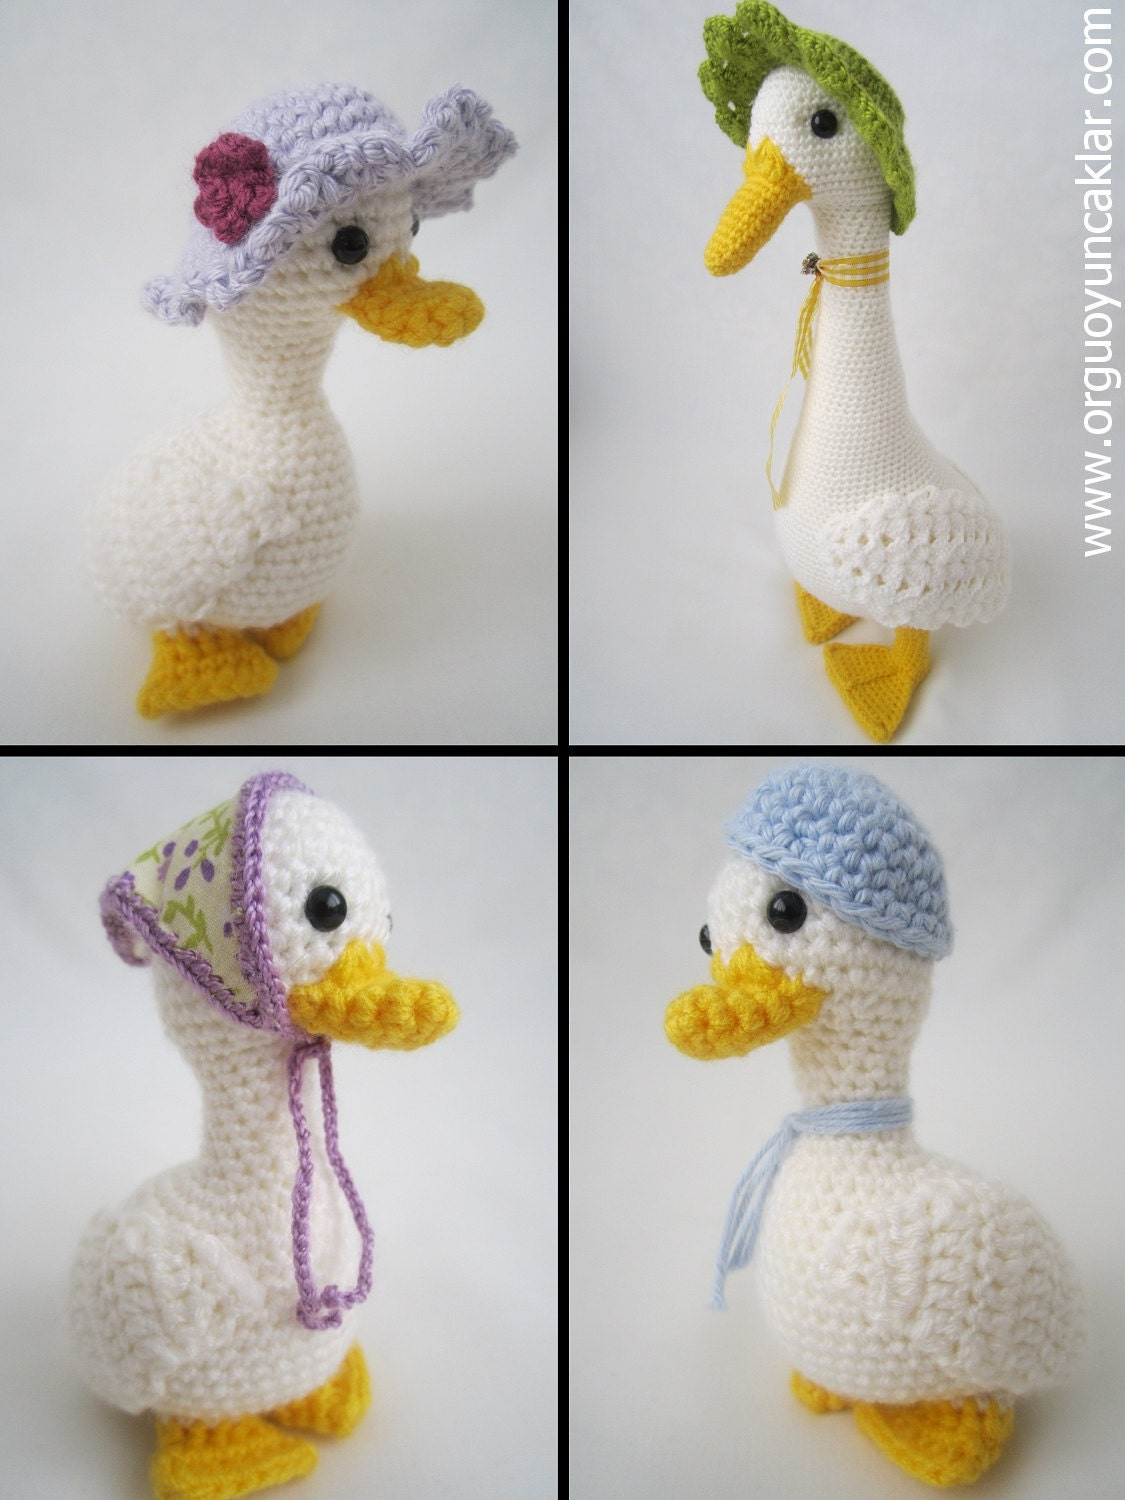 Amigurumi Mum and Baby Ducks Pattern